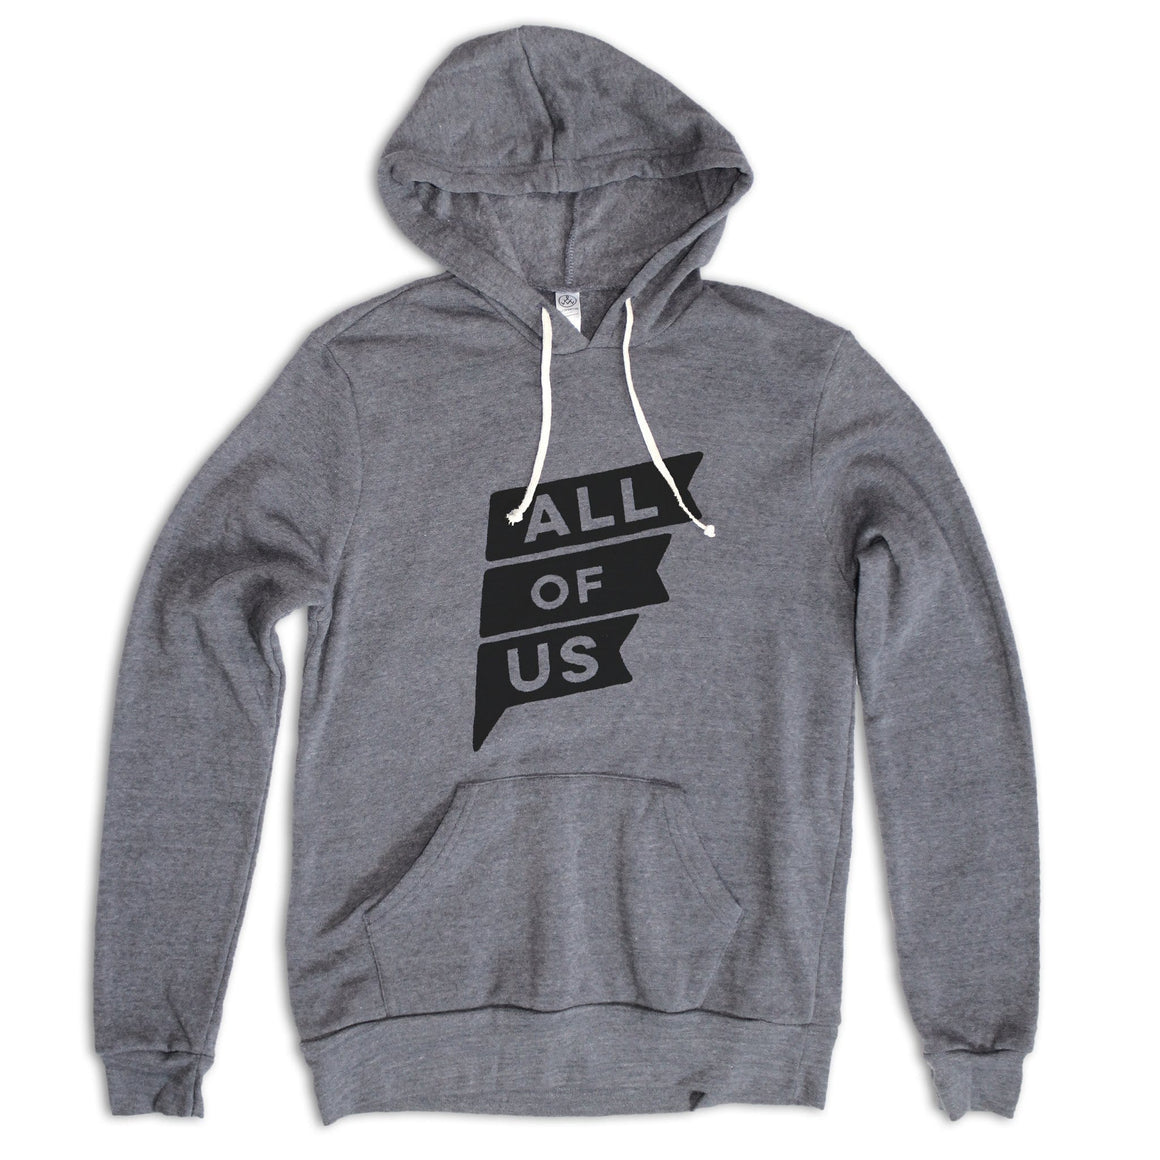 Men's All of Us™ Eco Grey Hoodie with All of Us Flag Print